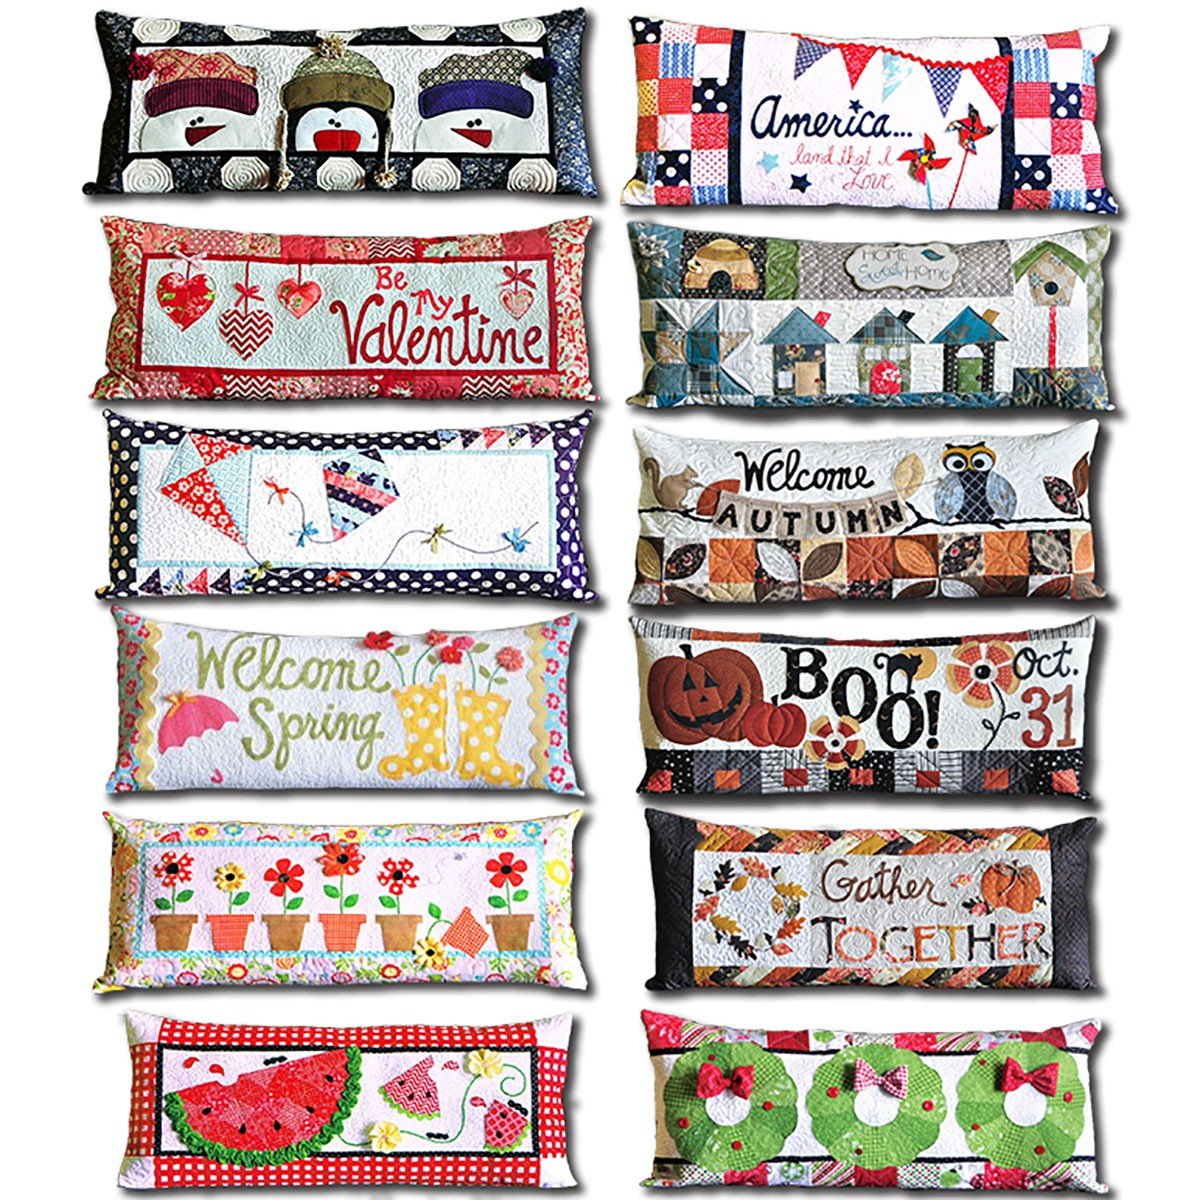 Bench Pillow Full Kit with pattern